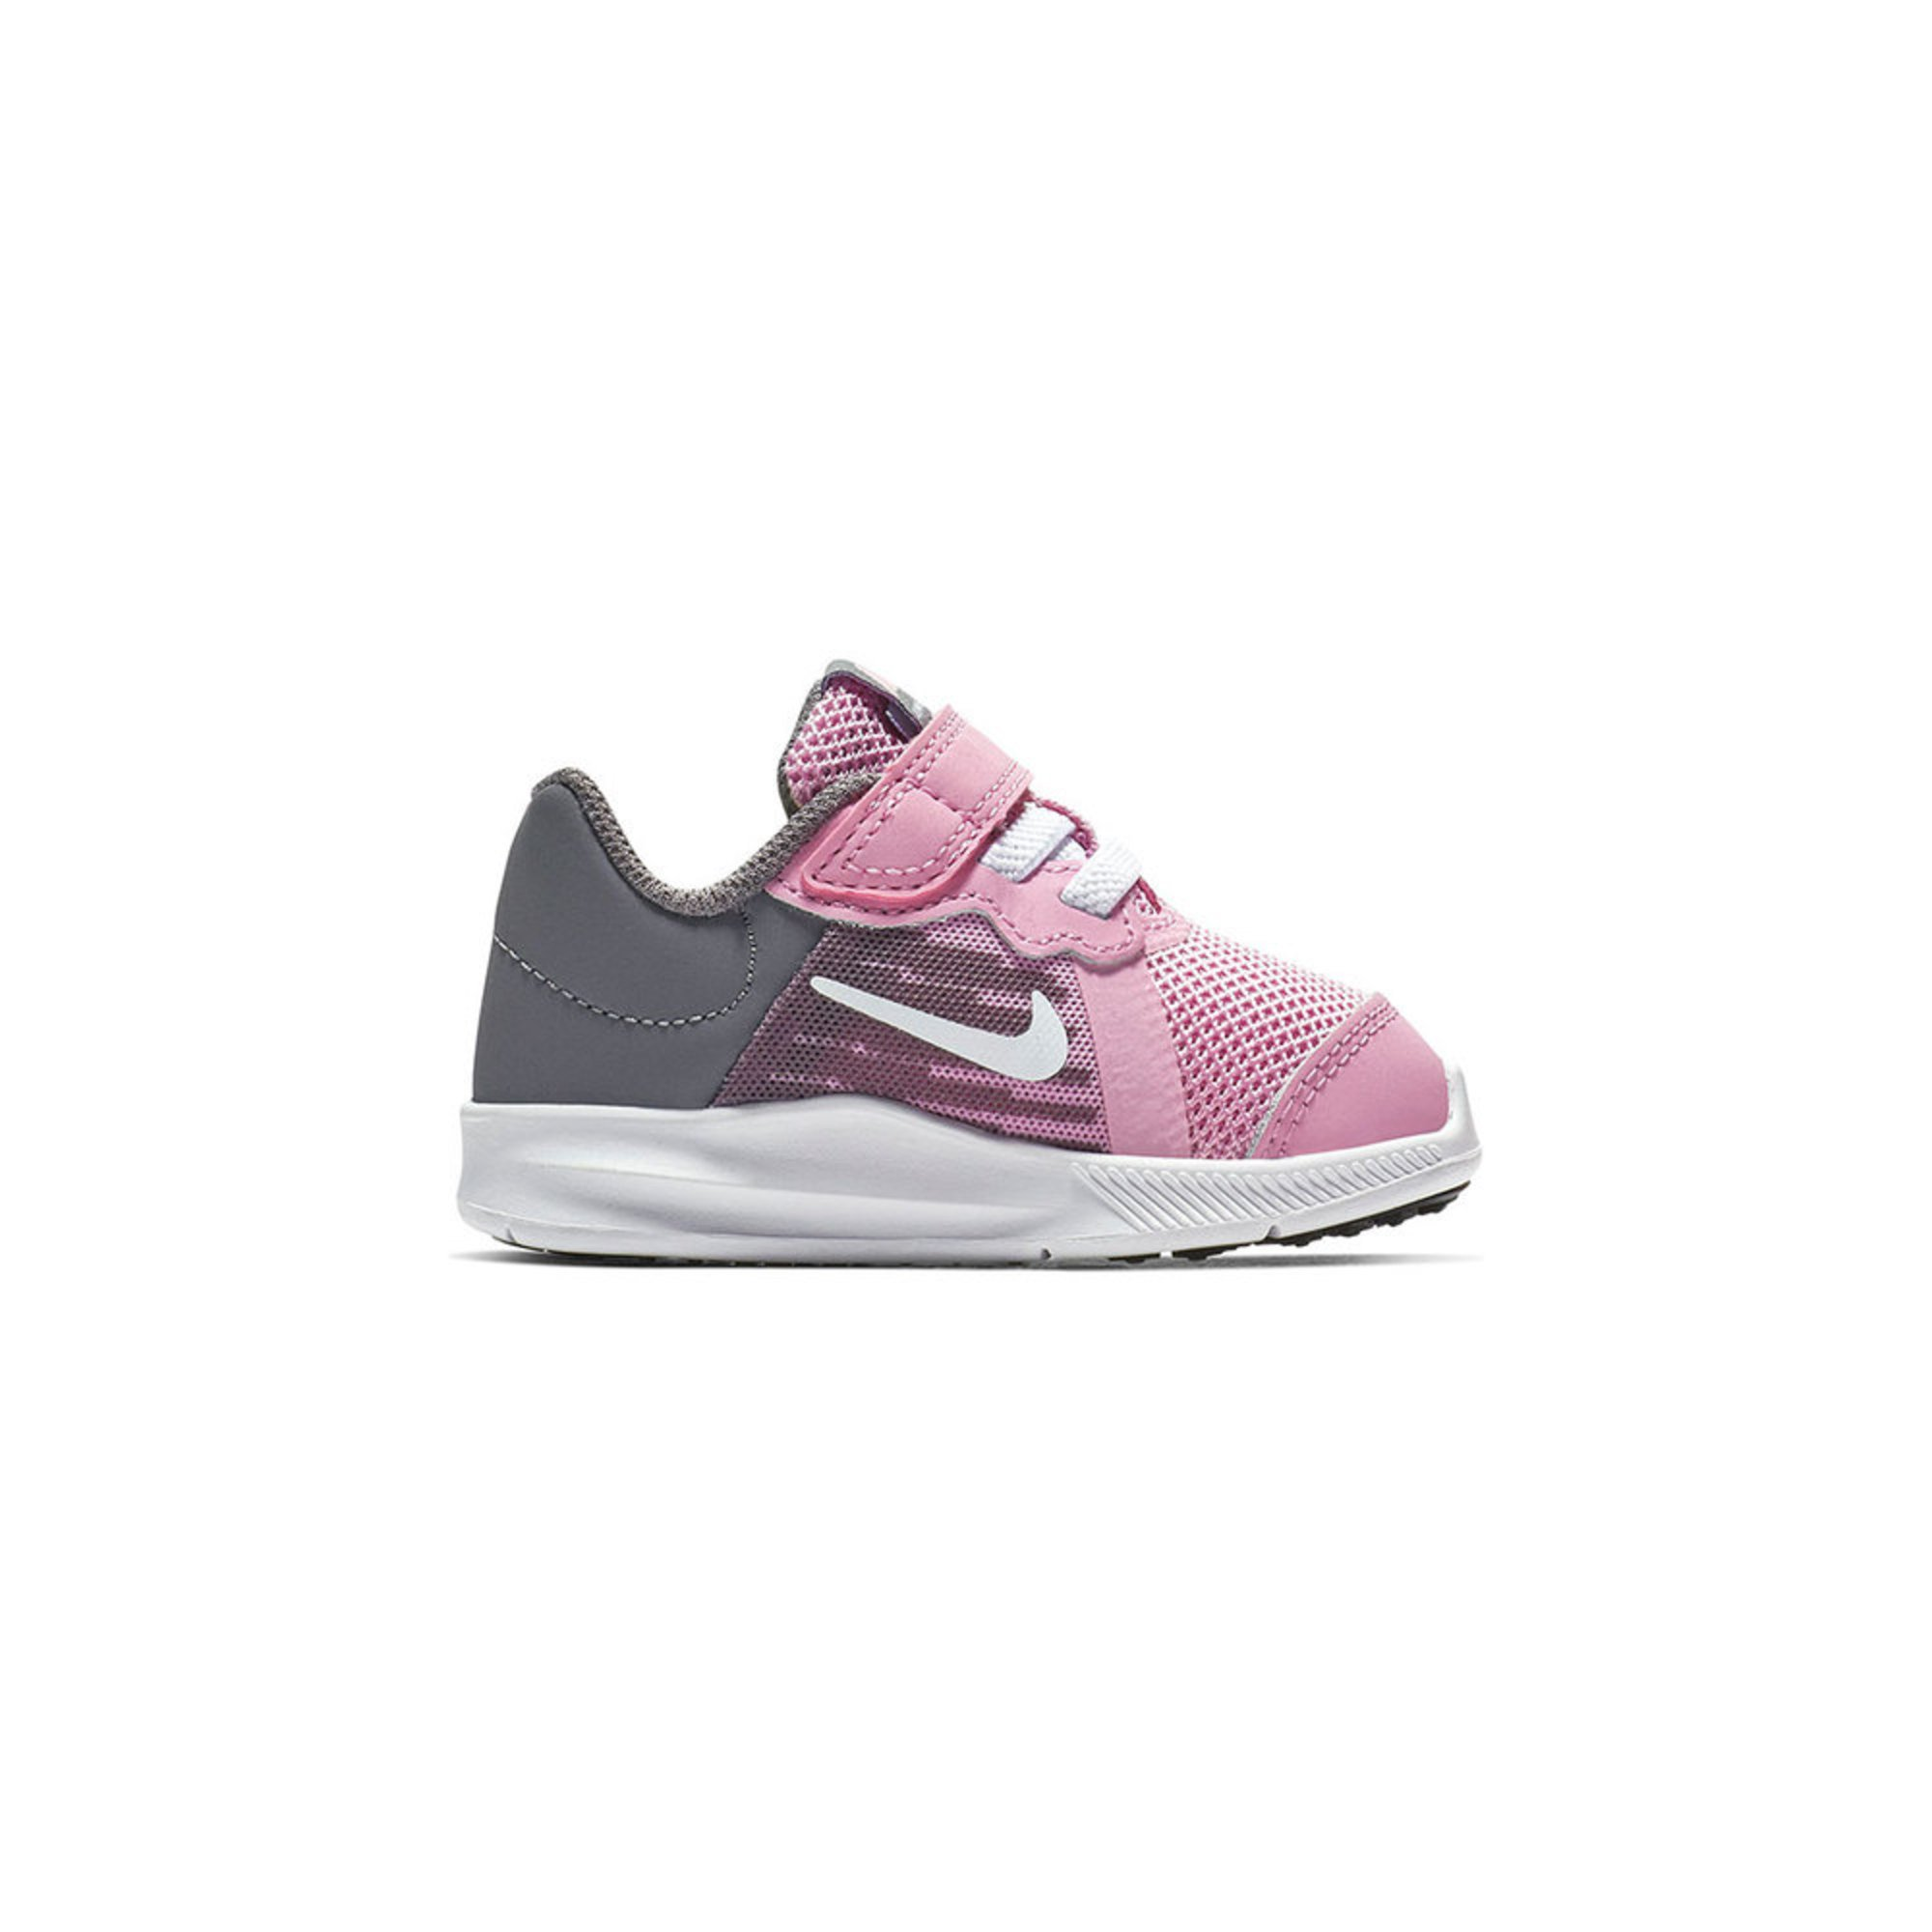 044f5c22fe13 Nike Girls Downshifter 8 Running Shoe (infant toddler)